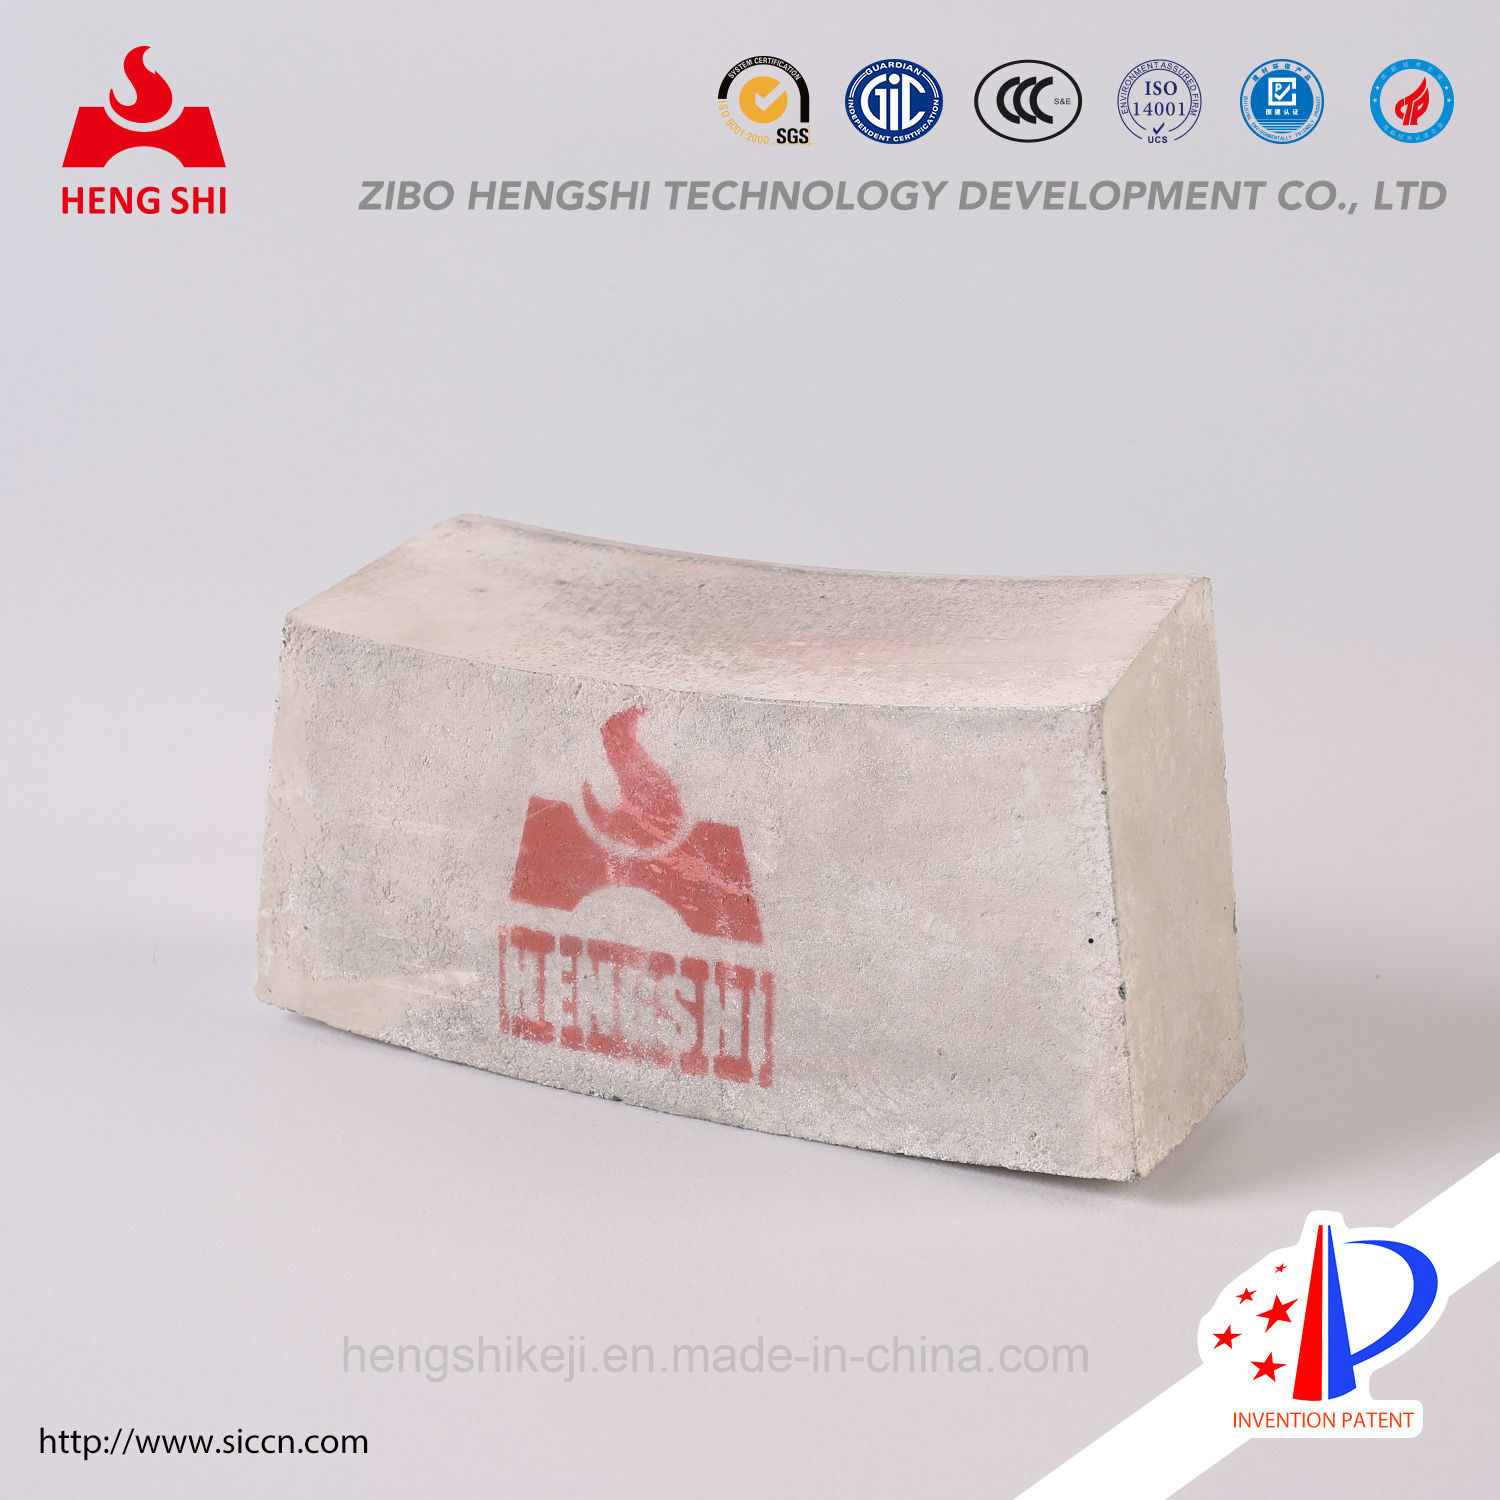 LG-10 Silicon Nitride Bonded Silicon Carbide Brick